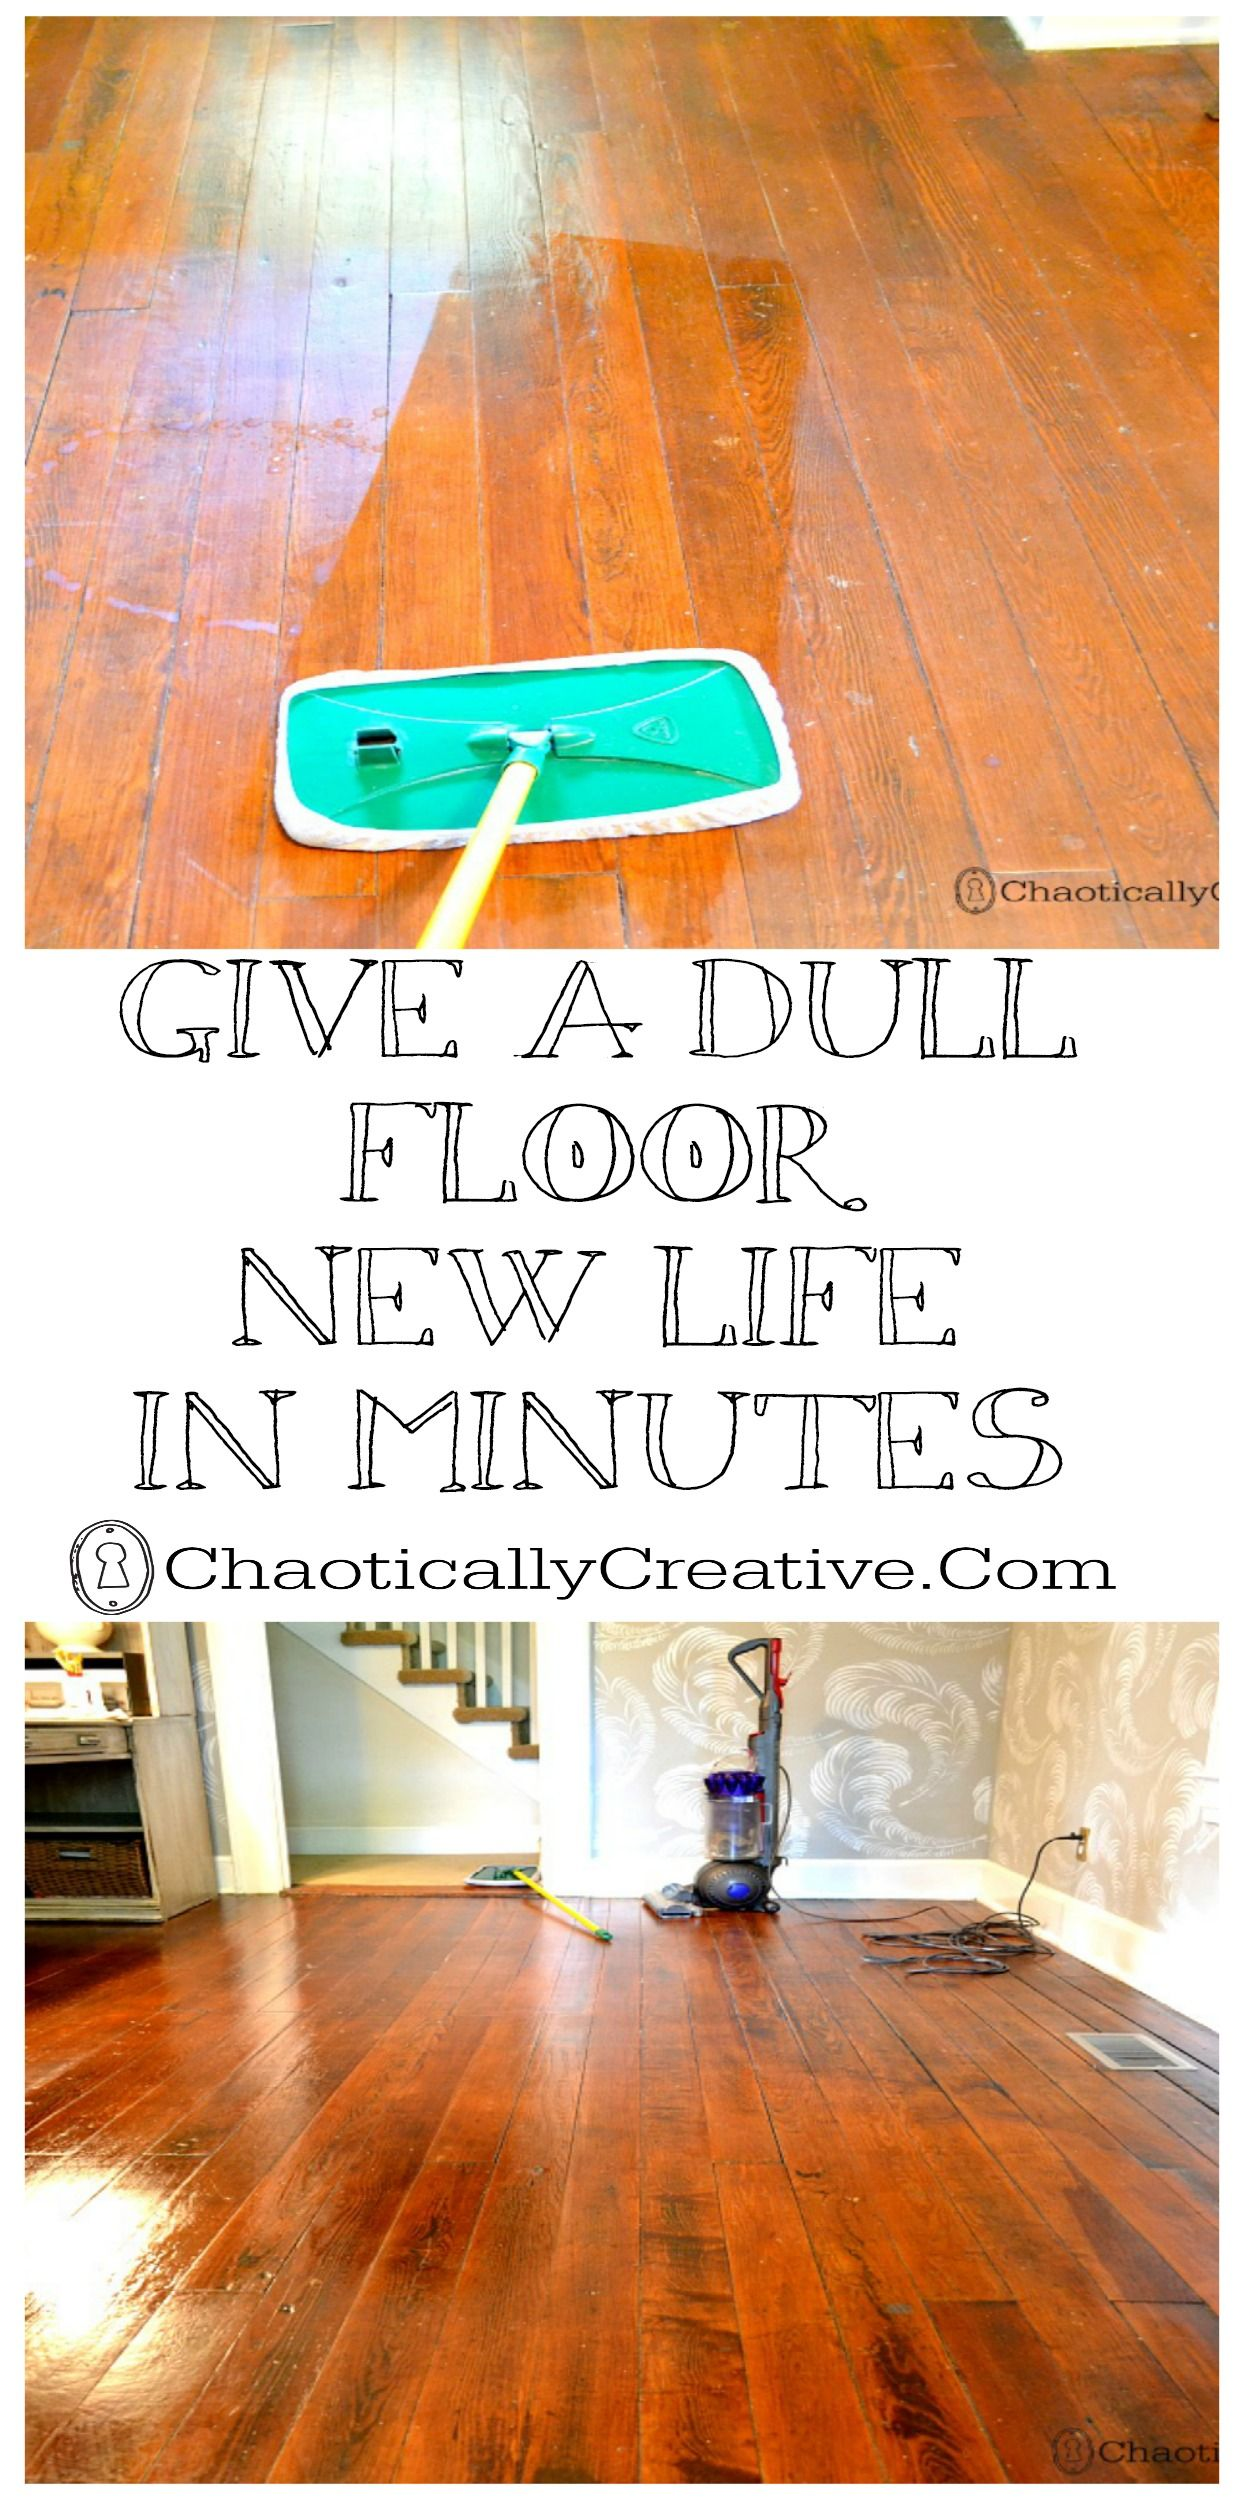 Shine Dull Floors In Minutes